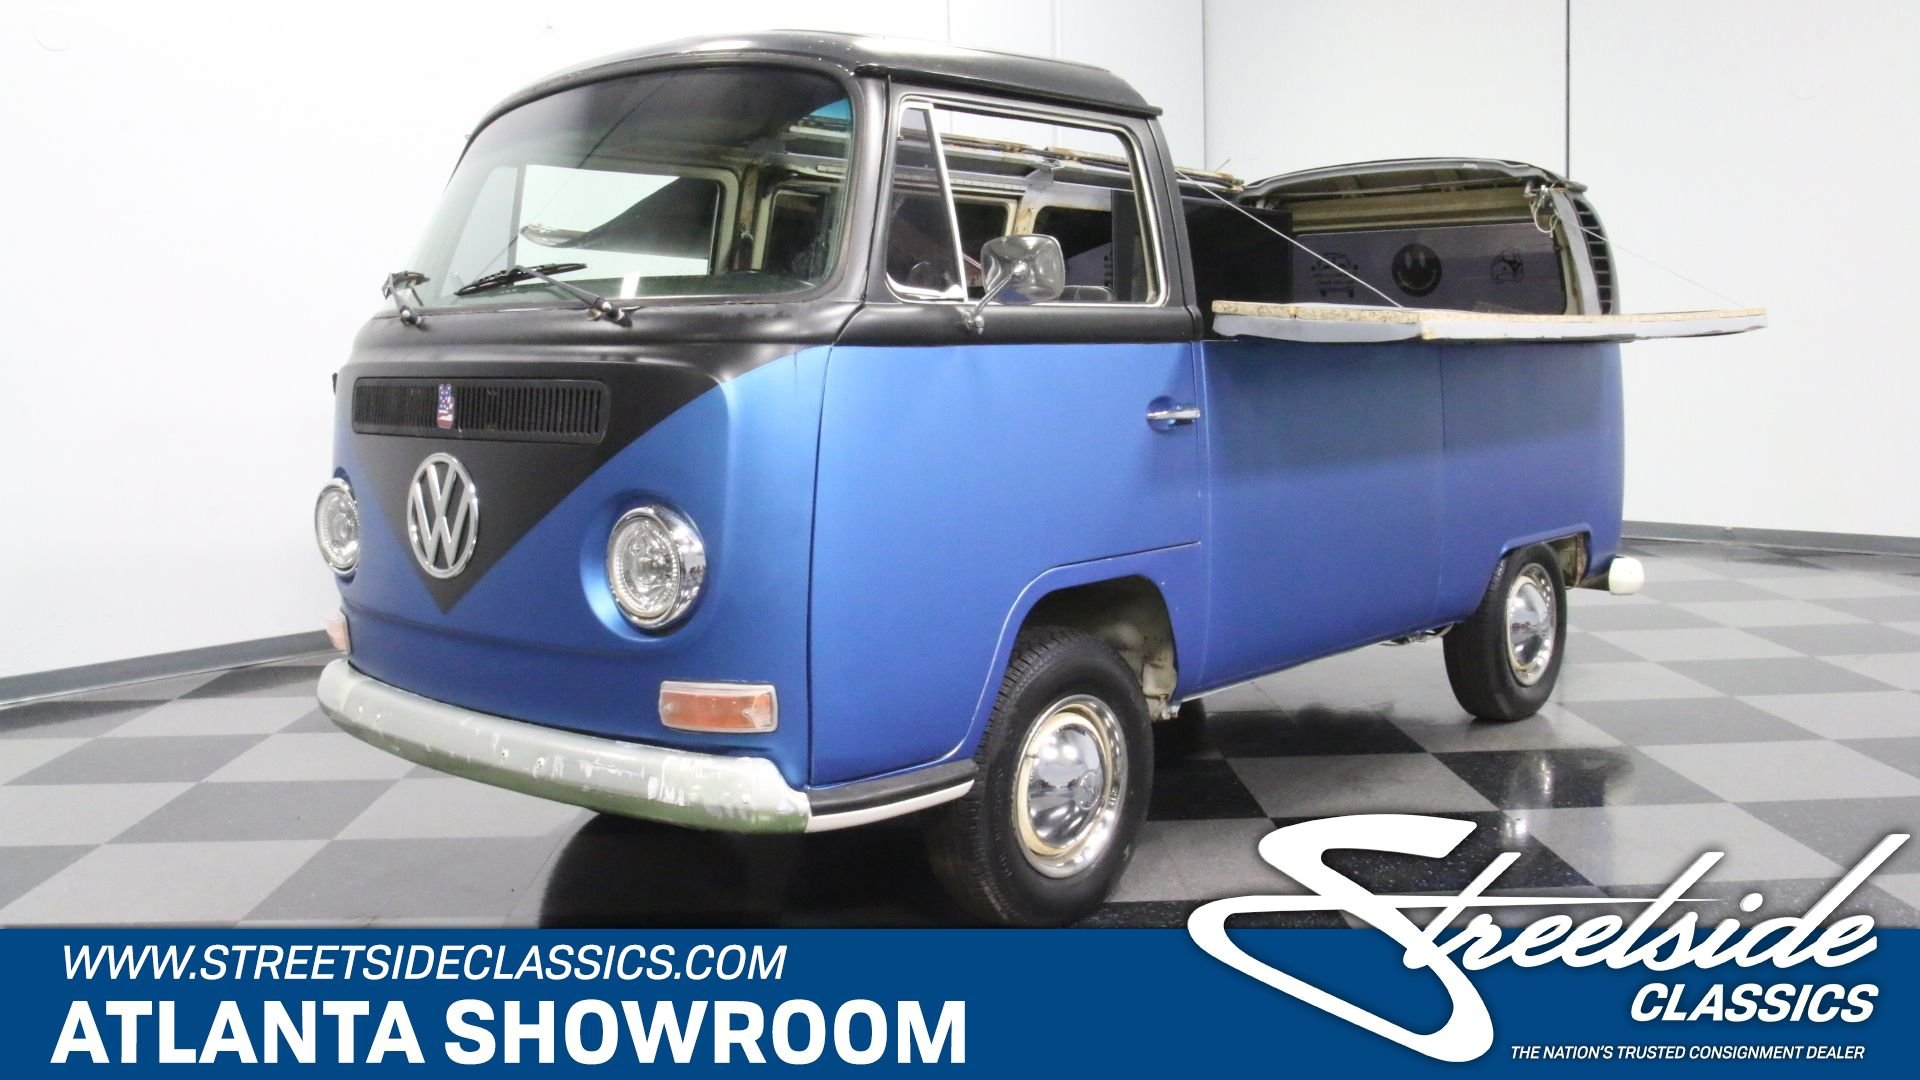 1970 Volkswagen Bus Classic Cars For Sale Streetside Classics The Nation S 1 Consignment Dealer